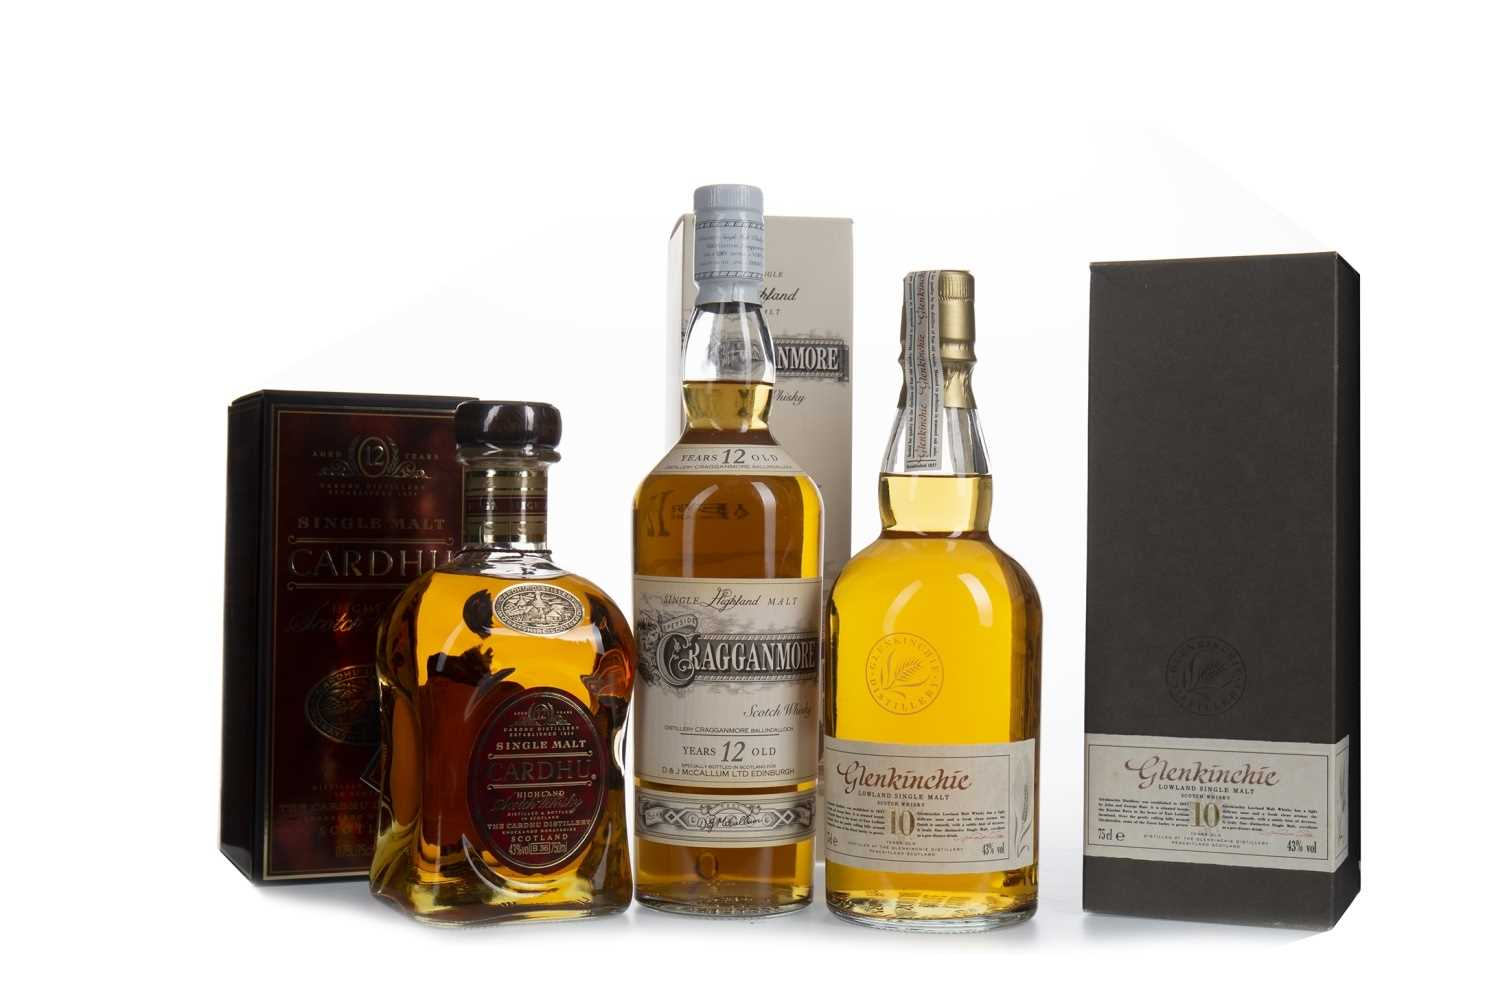 Lot 310-CARDHU 12 YEARS OLD, CRAGGANMORE 12 YEARS OLD AND GLENKINCHIE 10 YEARS OLD